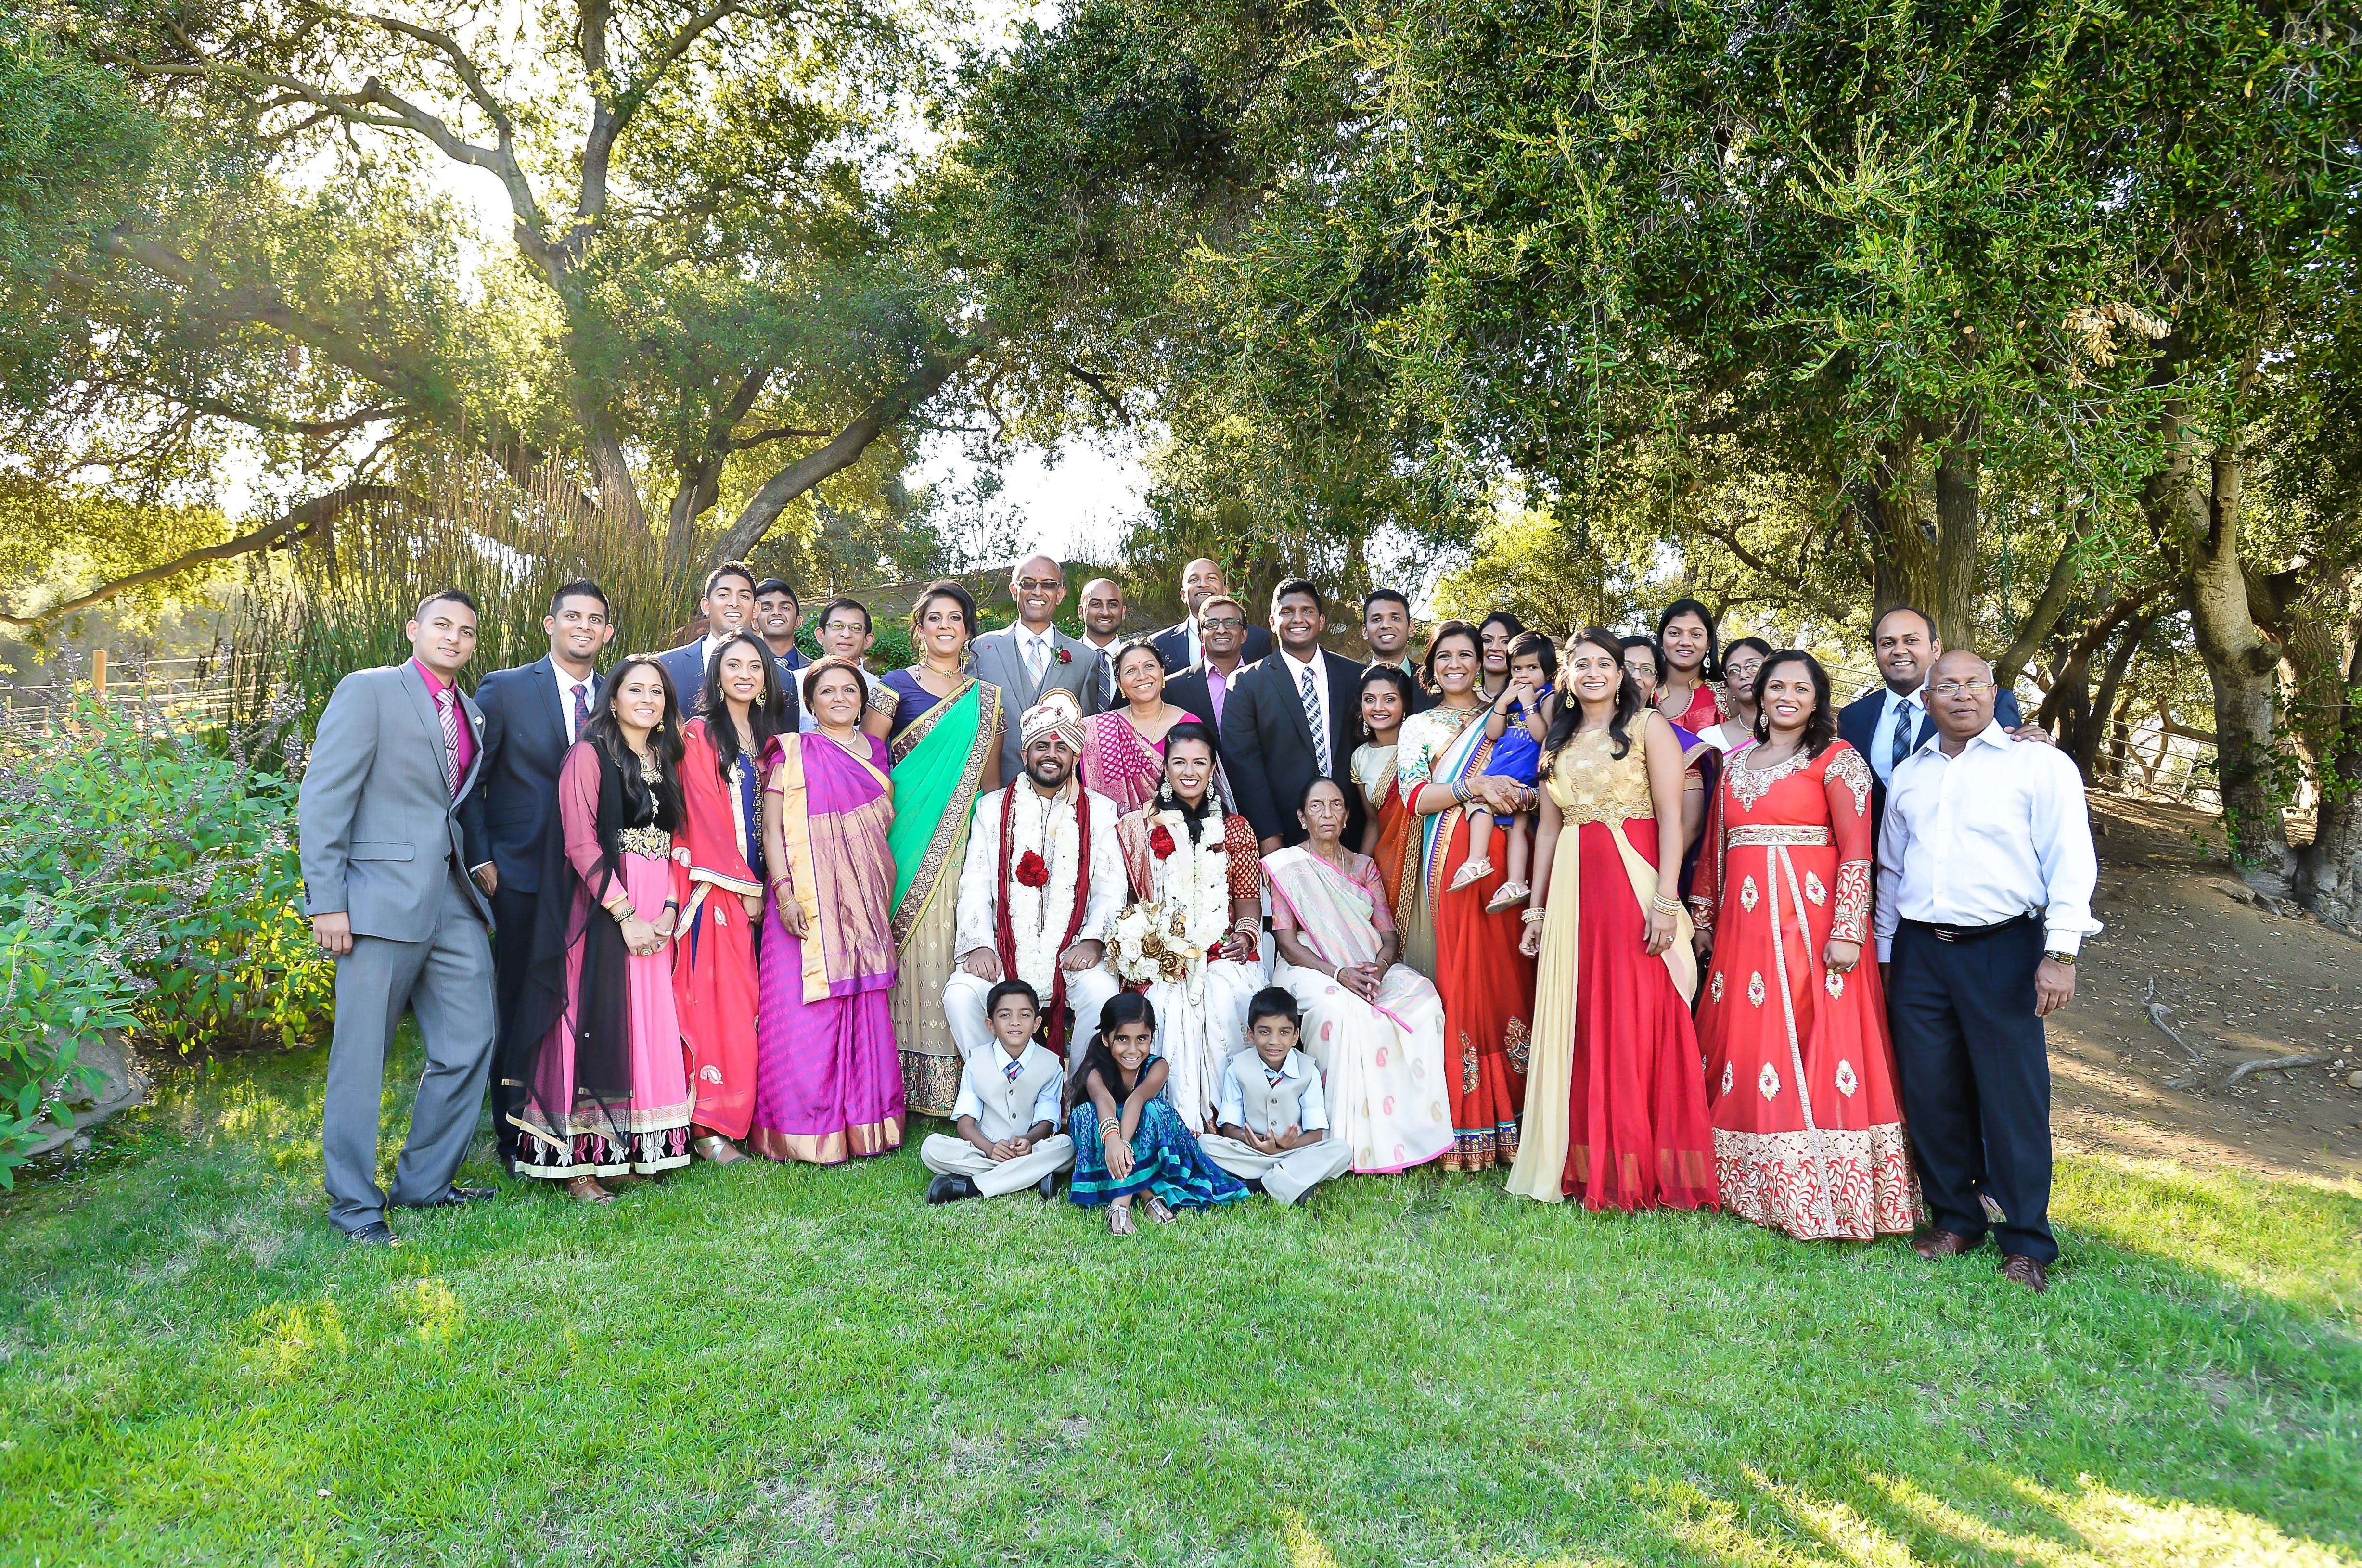 Rakhee Amrish Gift Exchange Indian Wedding Venue Photography Greycard Hindu Outdoor Dresses Bride Groom Vineyard South Asian Extended Family